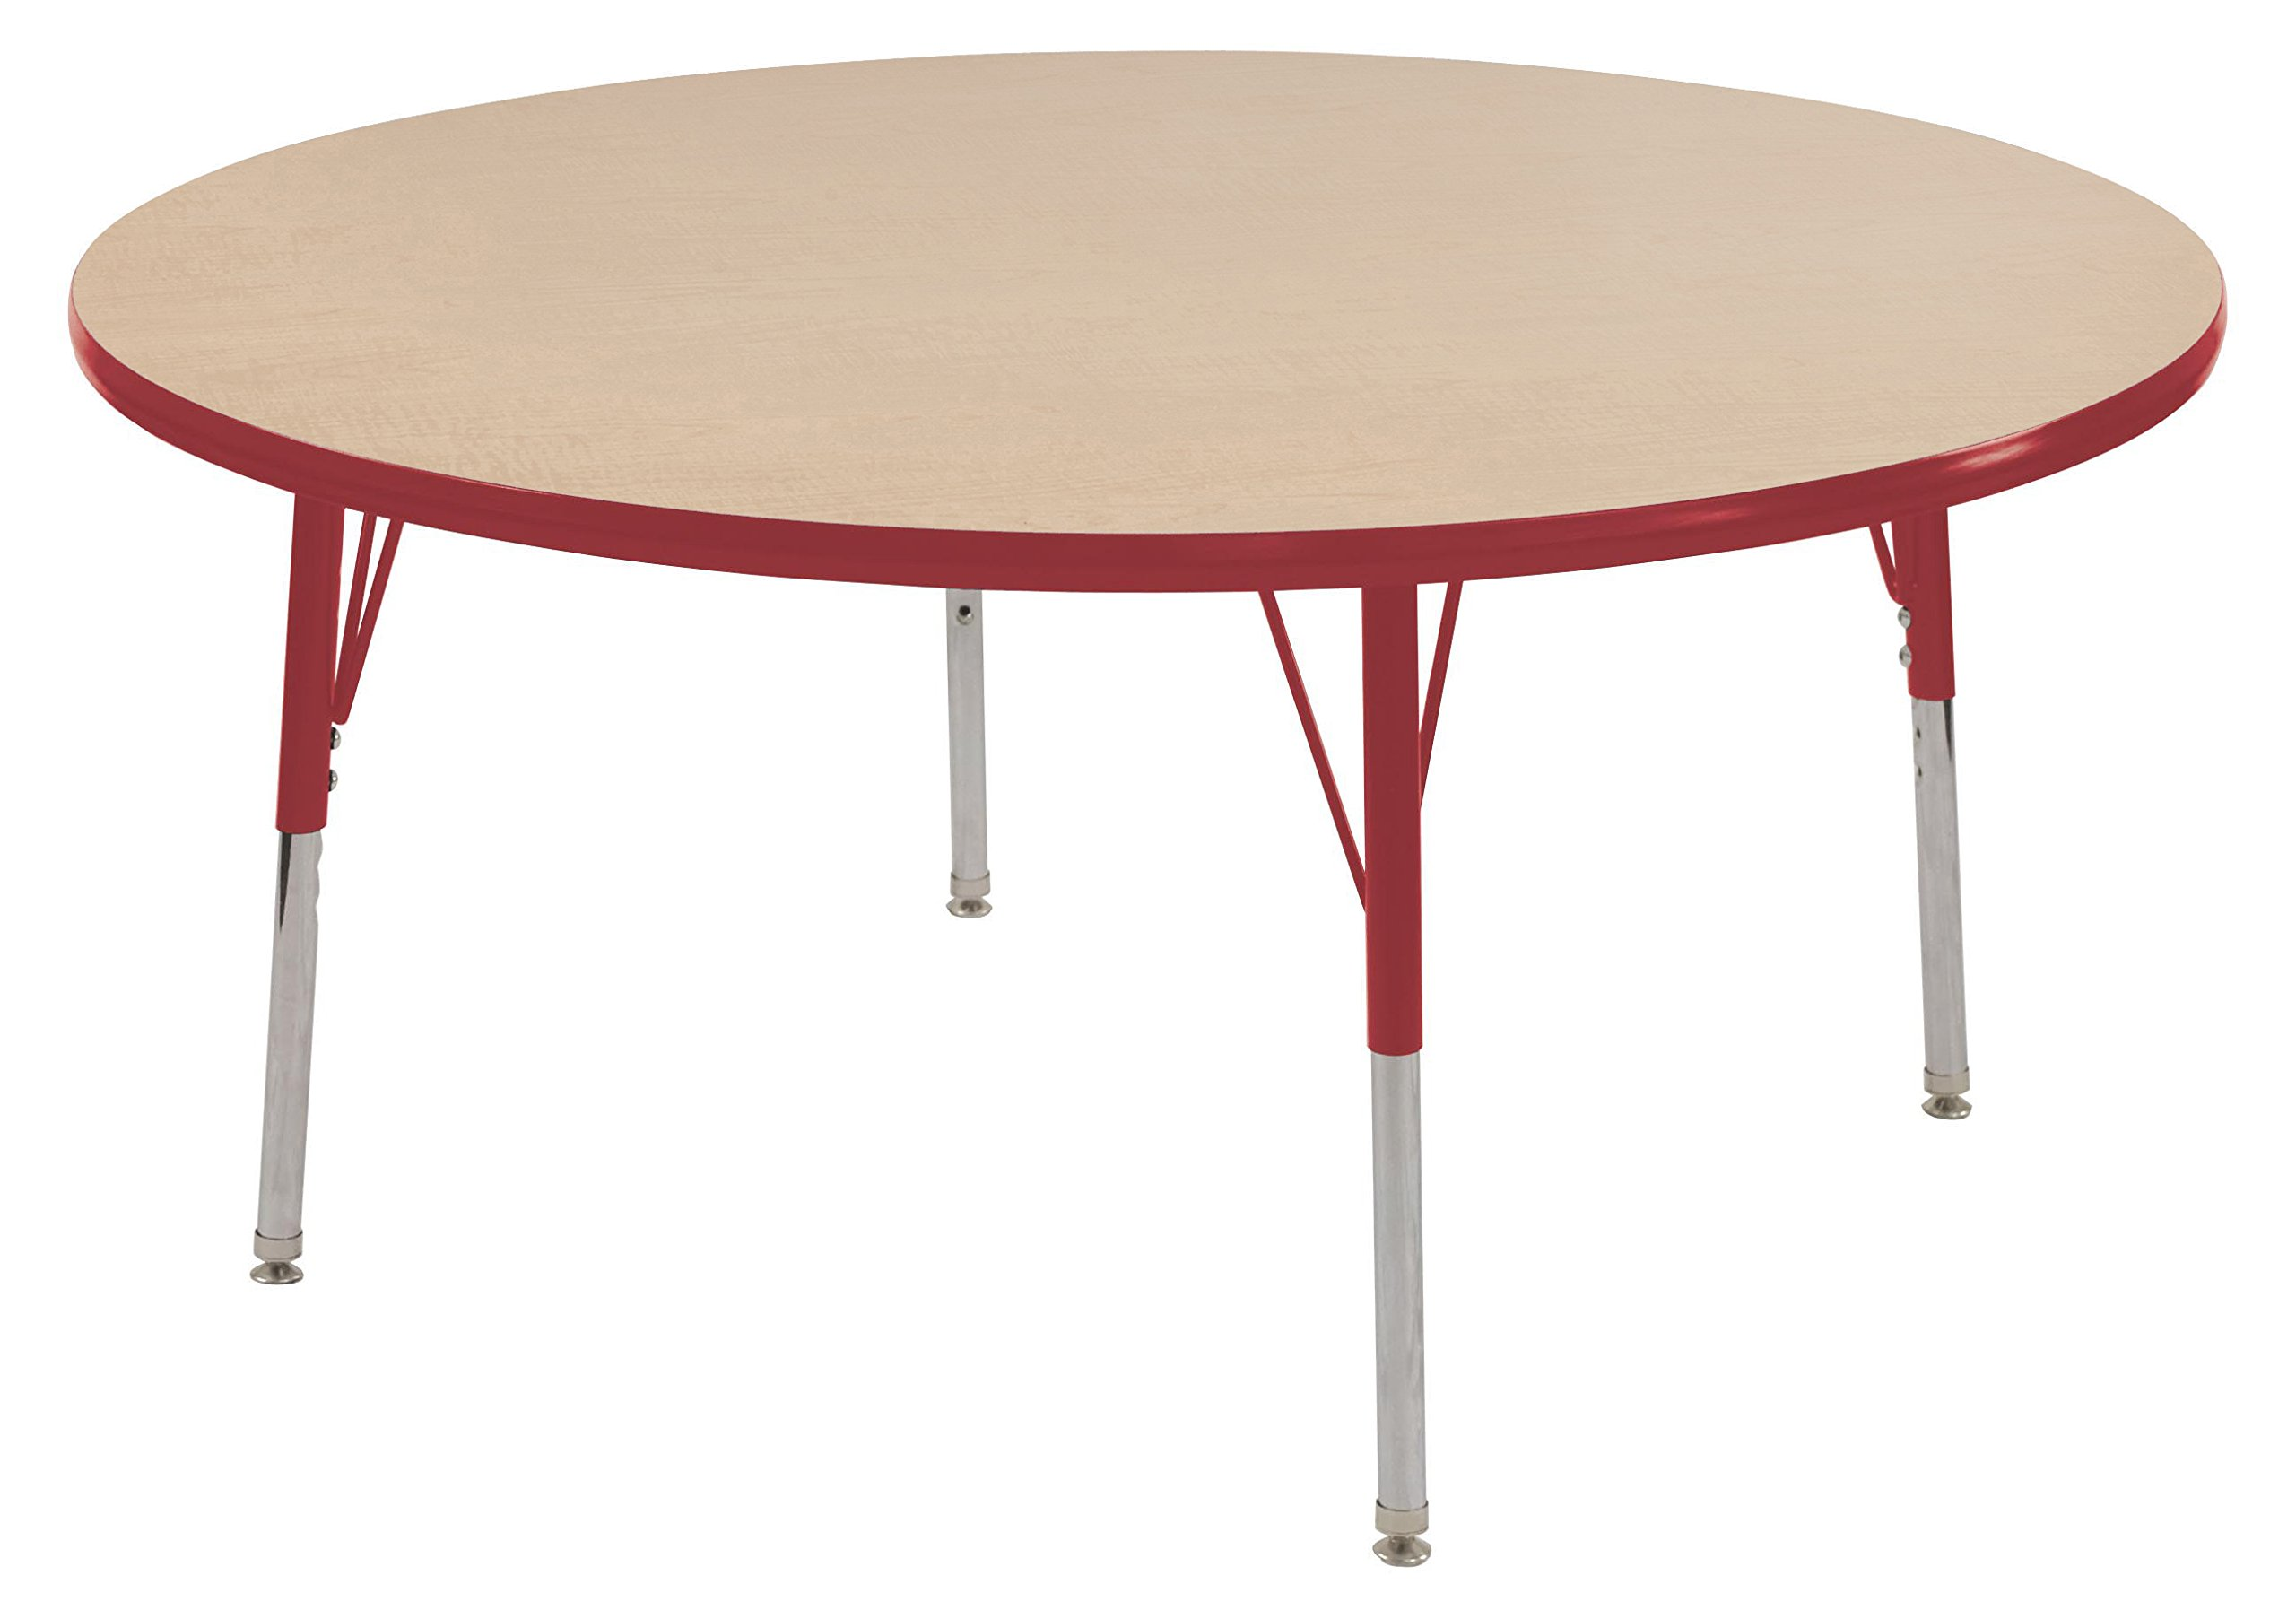 ECR4Kids T-Mold 60'' Round Activity School Table, Standard Legs w/ Swivel Glides, Adjustable Height 19-30 inch (Maple/Red)